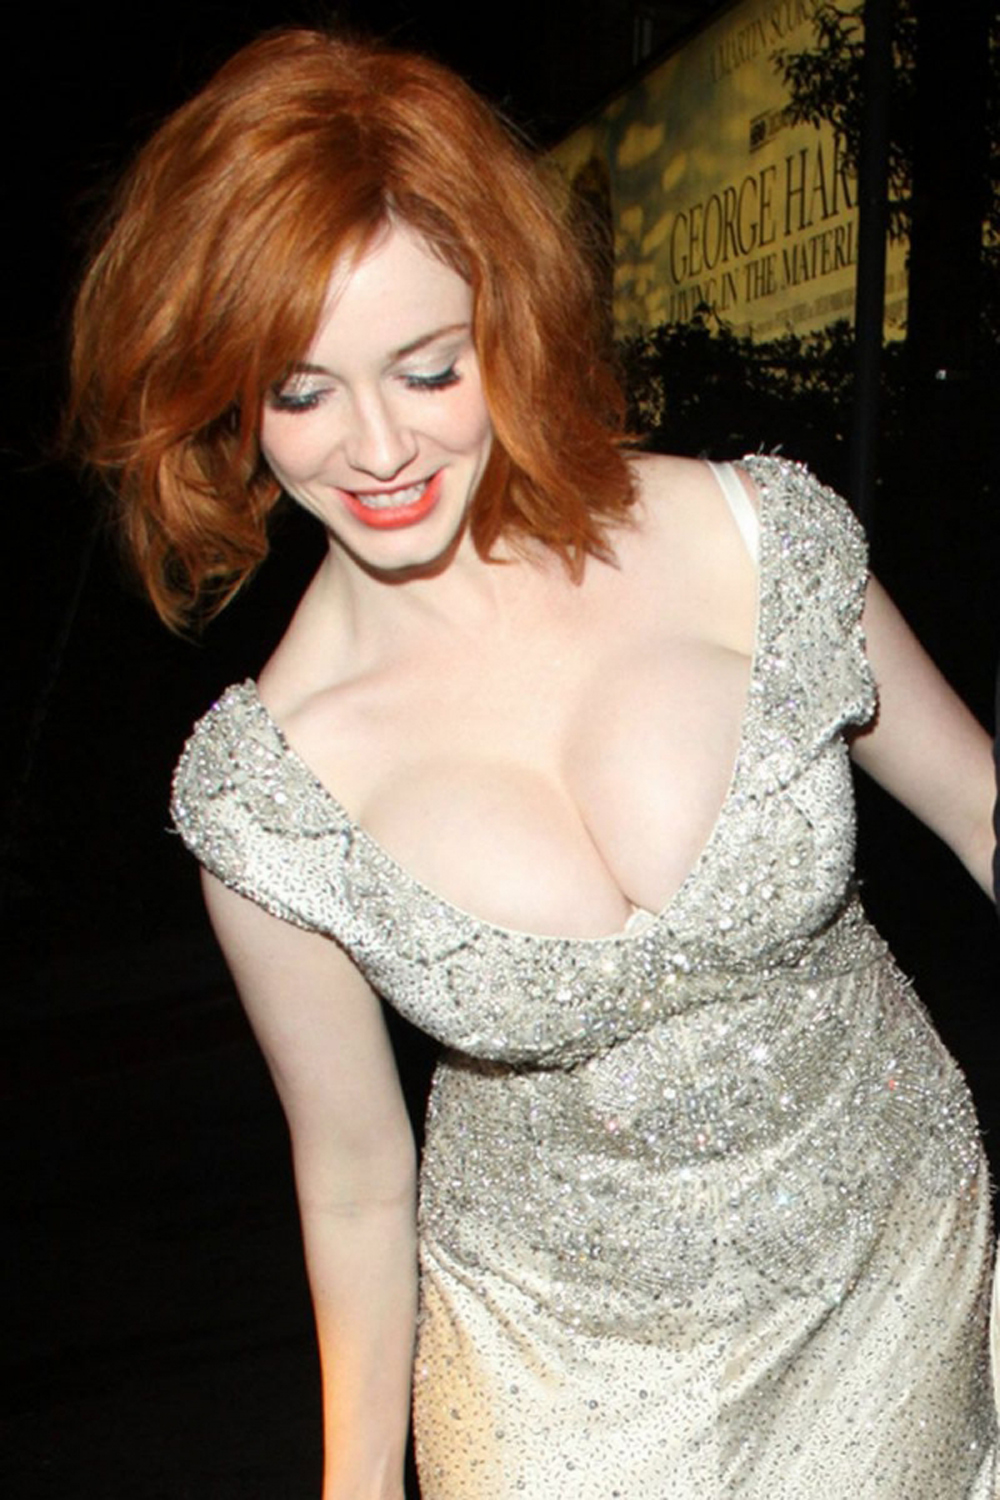 600full-christina-hendricks